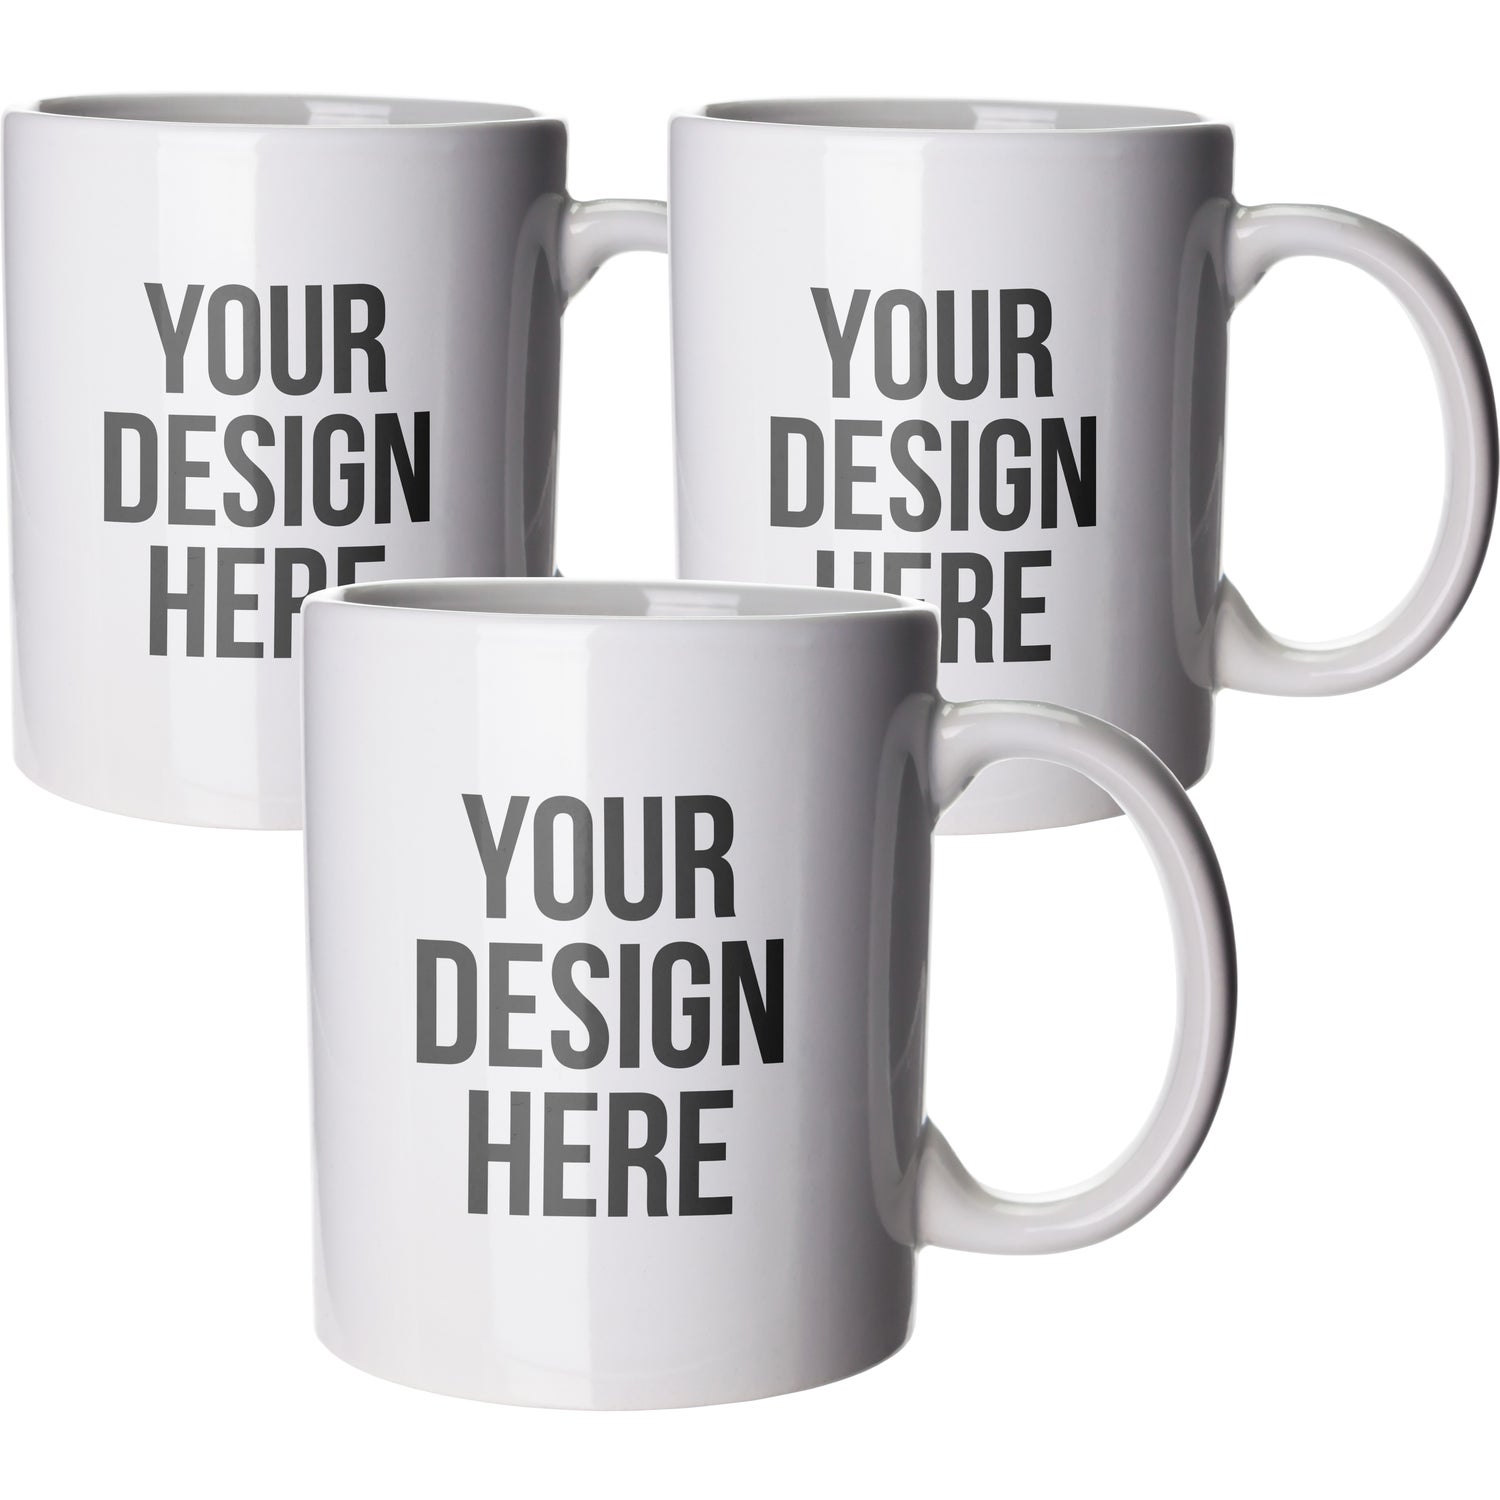 White Budget Coffee Mug 11 Oz Branded